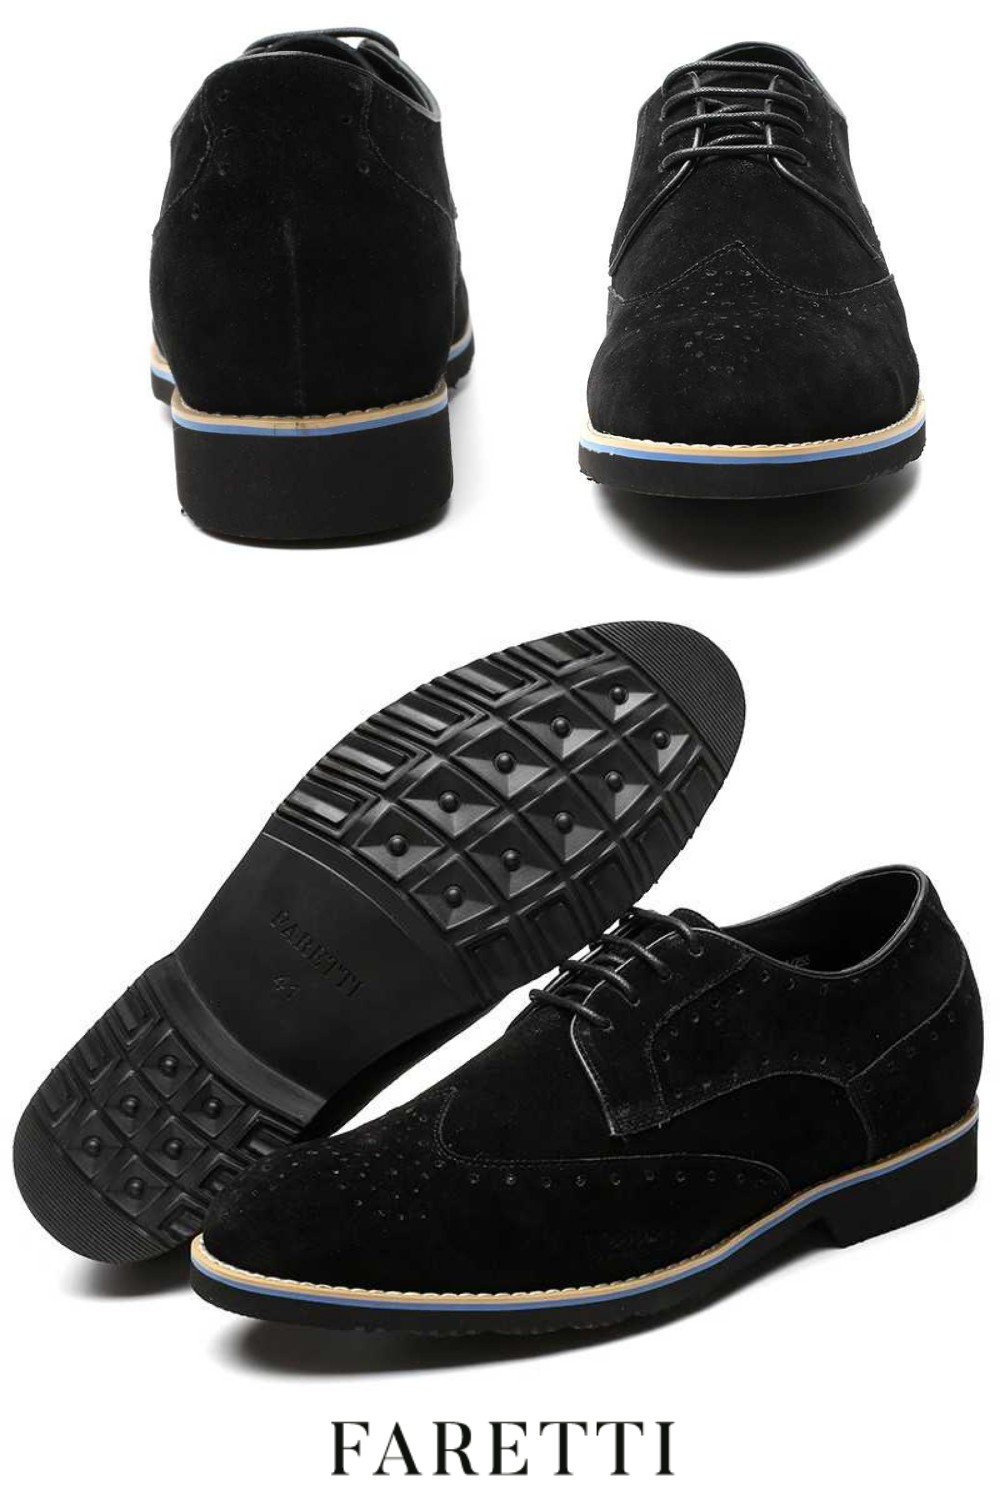 Idealne Buty Na Jesienny Spacer My Je Mamy In 2020 Dress Shoes Men Loafers Men Oxford Shoes